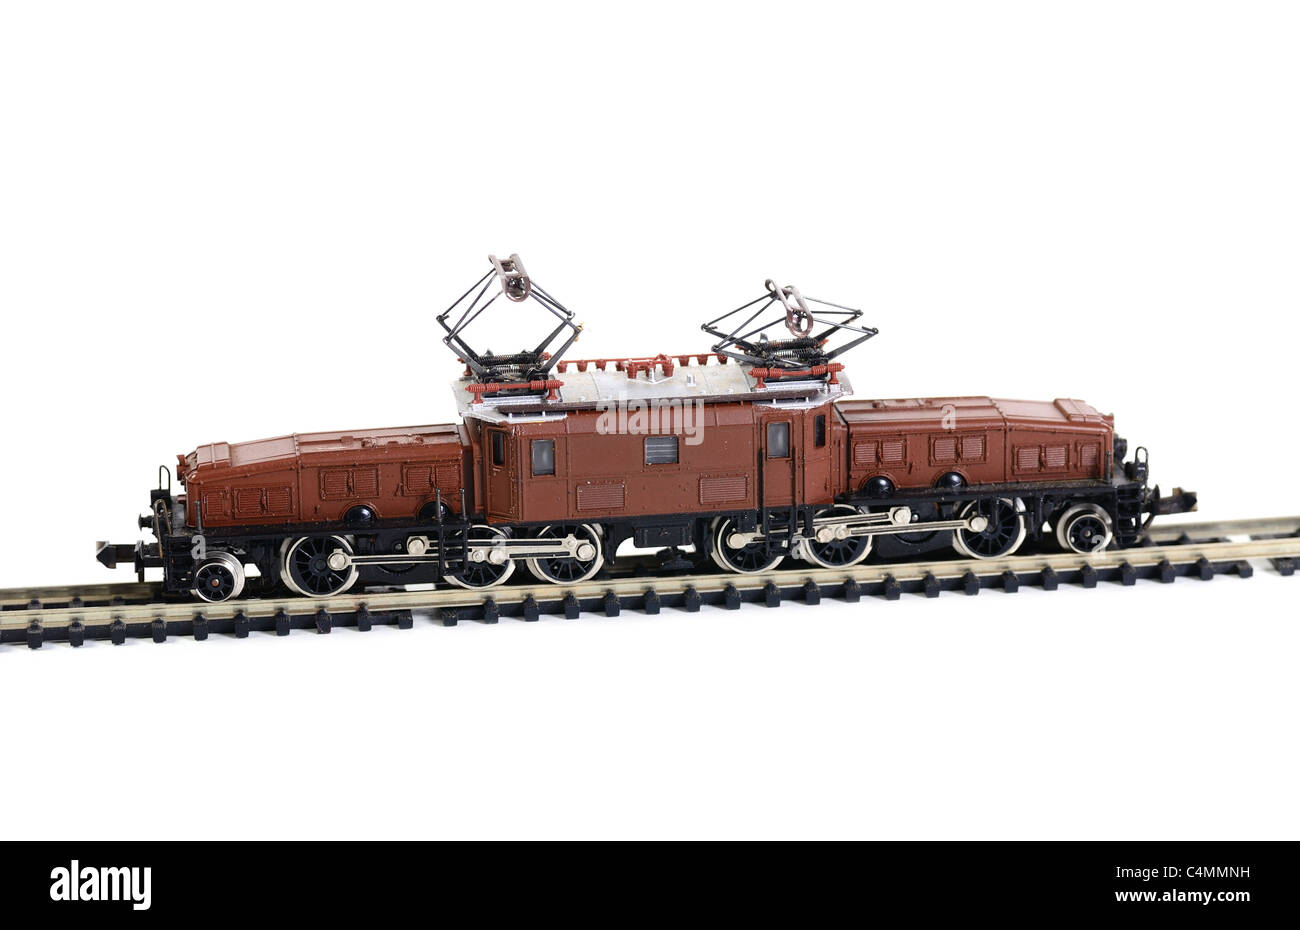 Model railroading - Stock Image